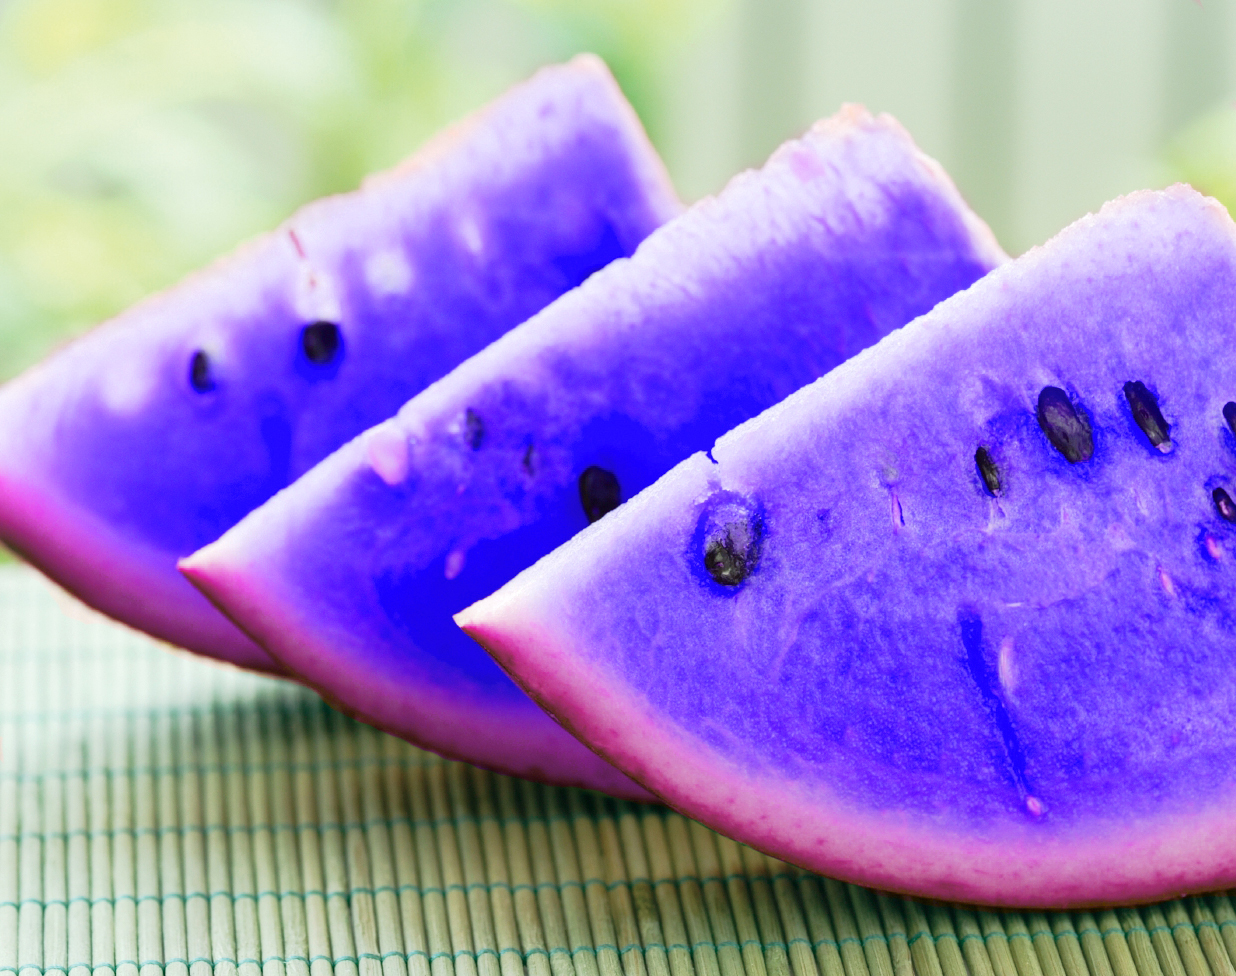 Colored Watermelon | pictures.nebo.edu